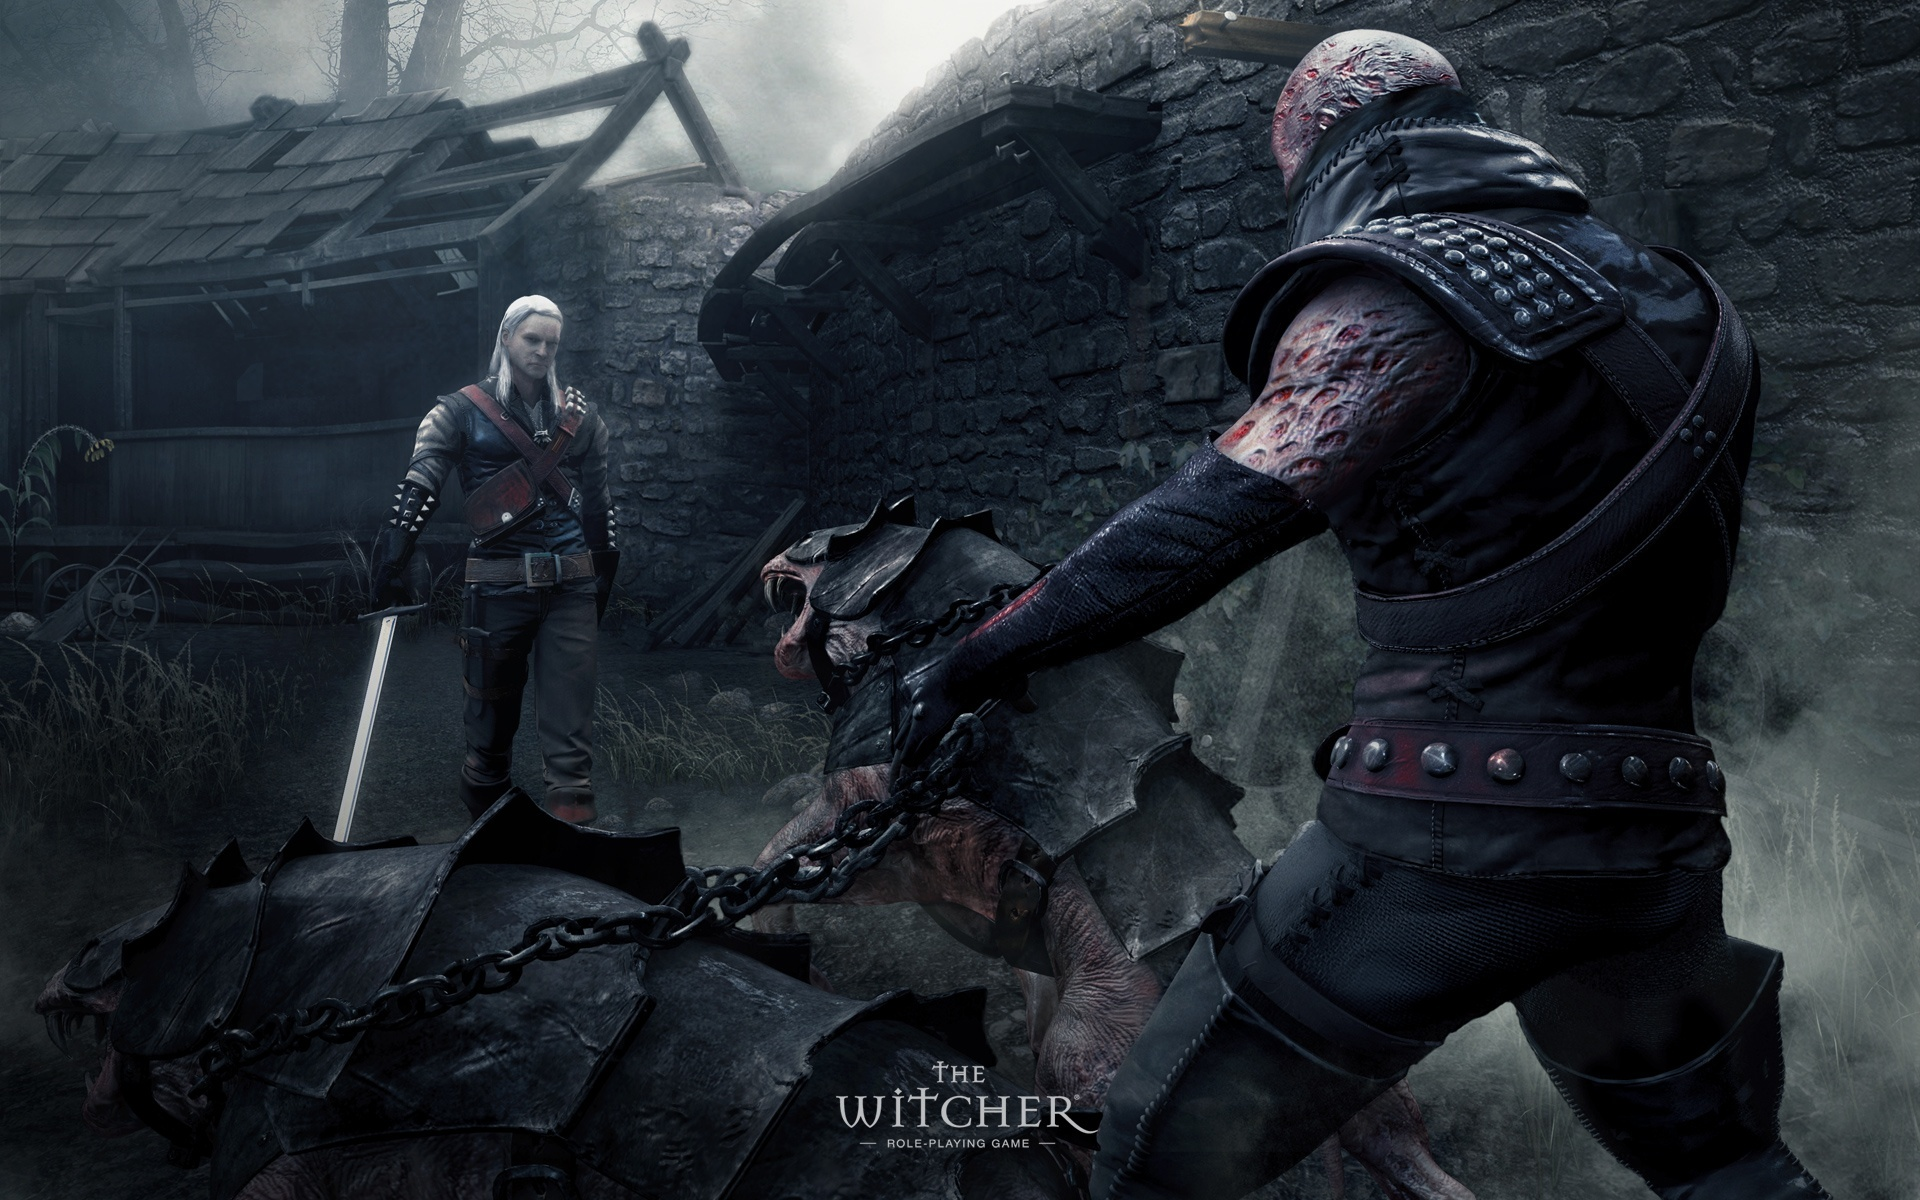 the witcher the witcher wallpaper 29331452 fanpop